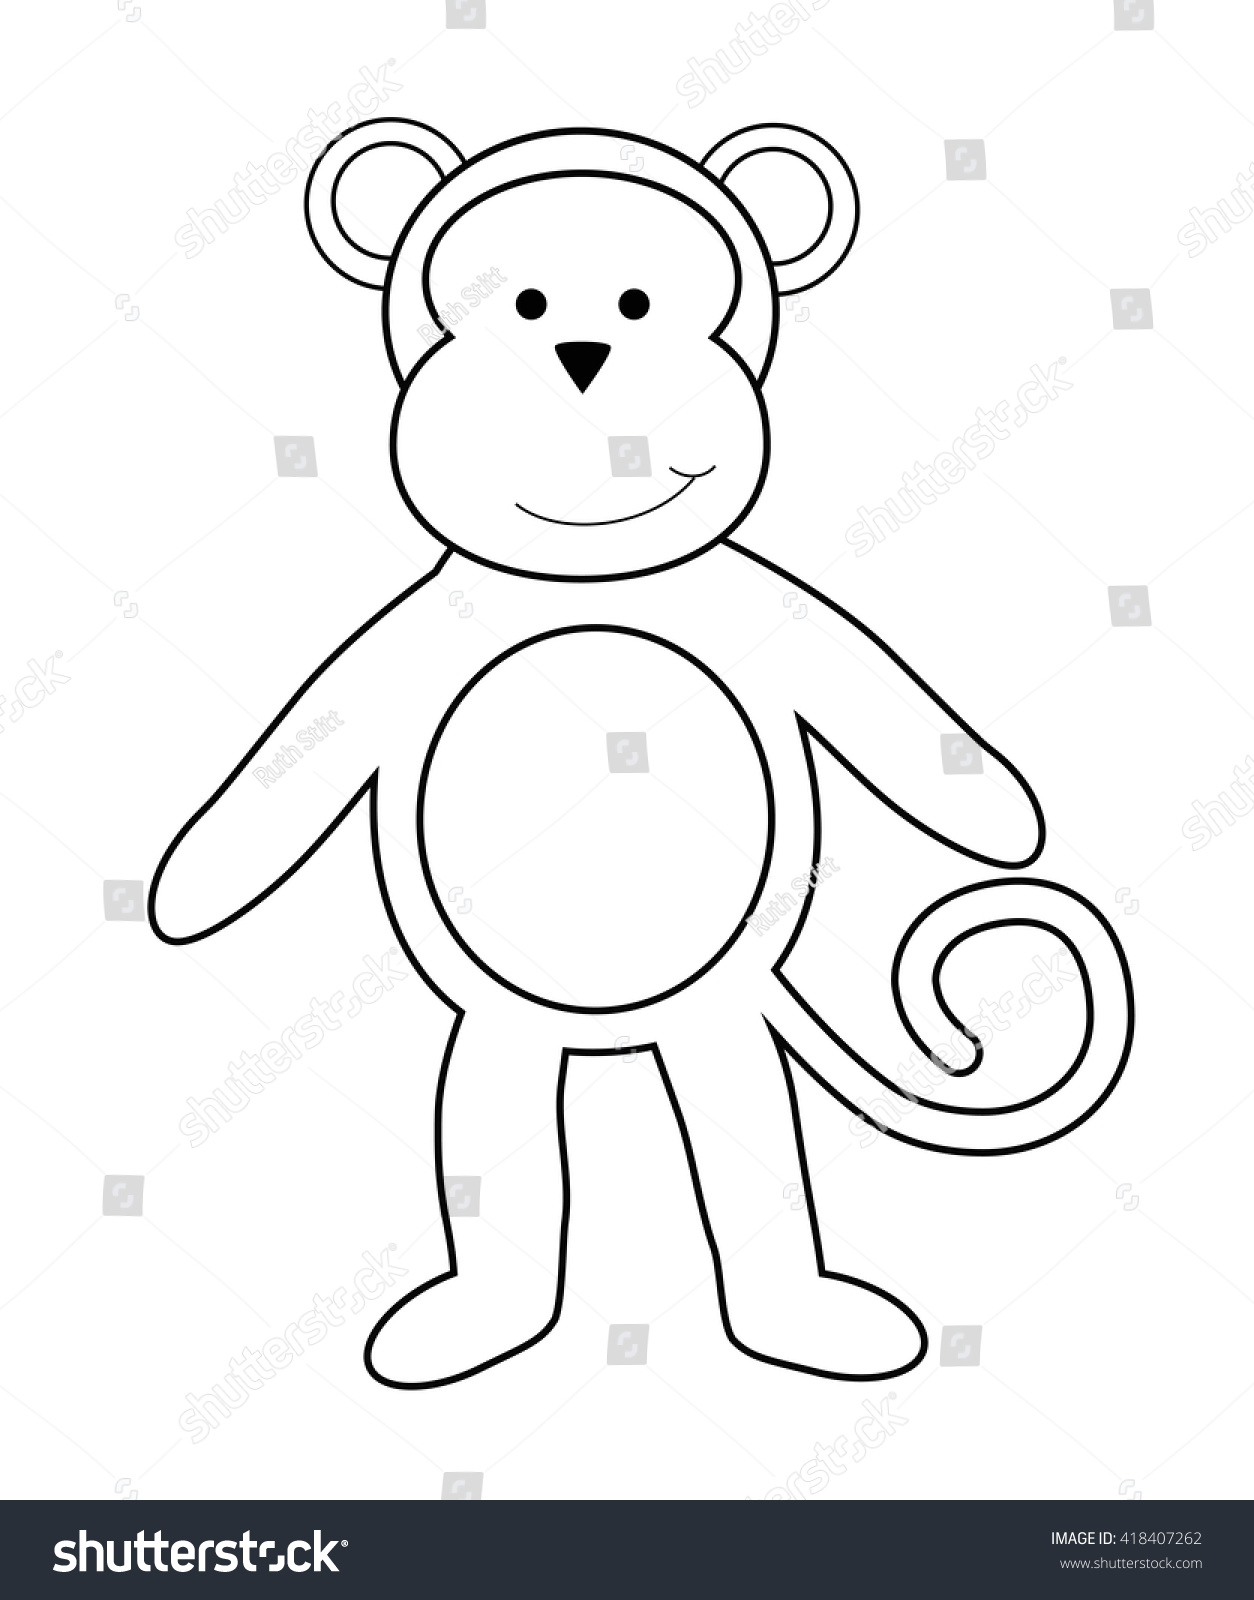 Monkey Coloring Page Stock Vector 418407262 - Shutterstock